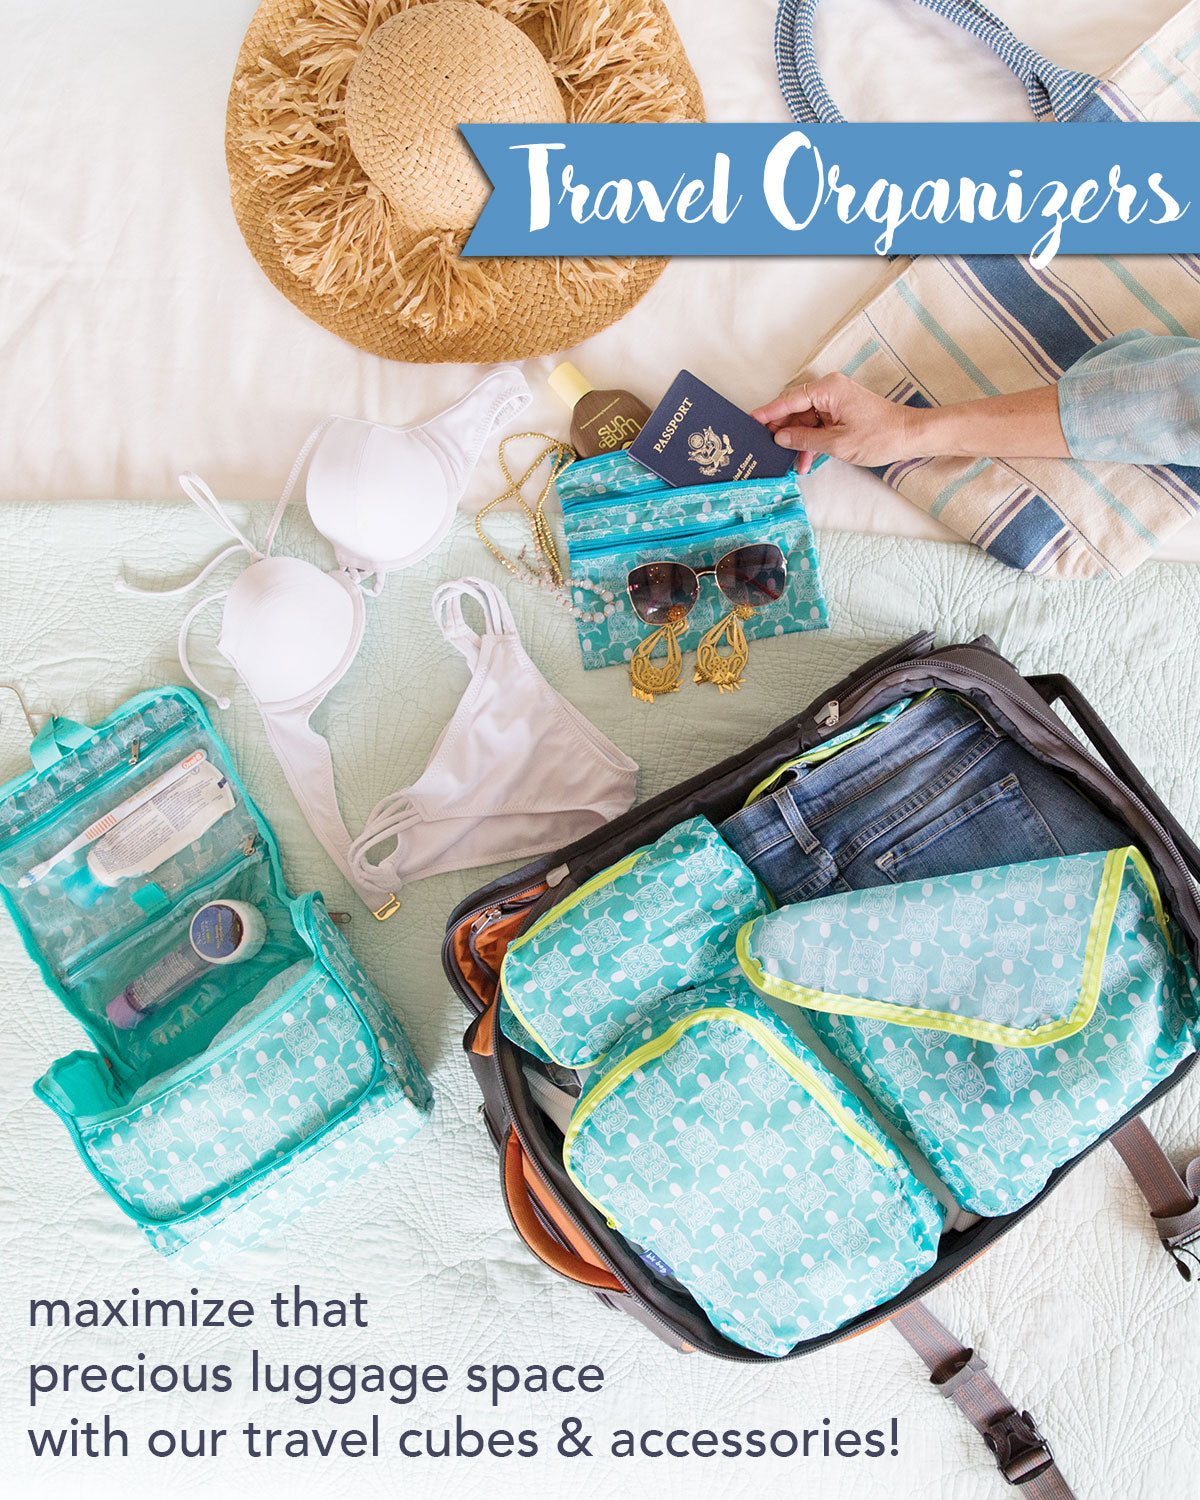 travel cubes and pouches keep you organized on vacation